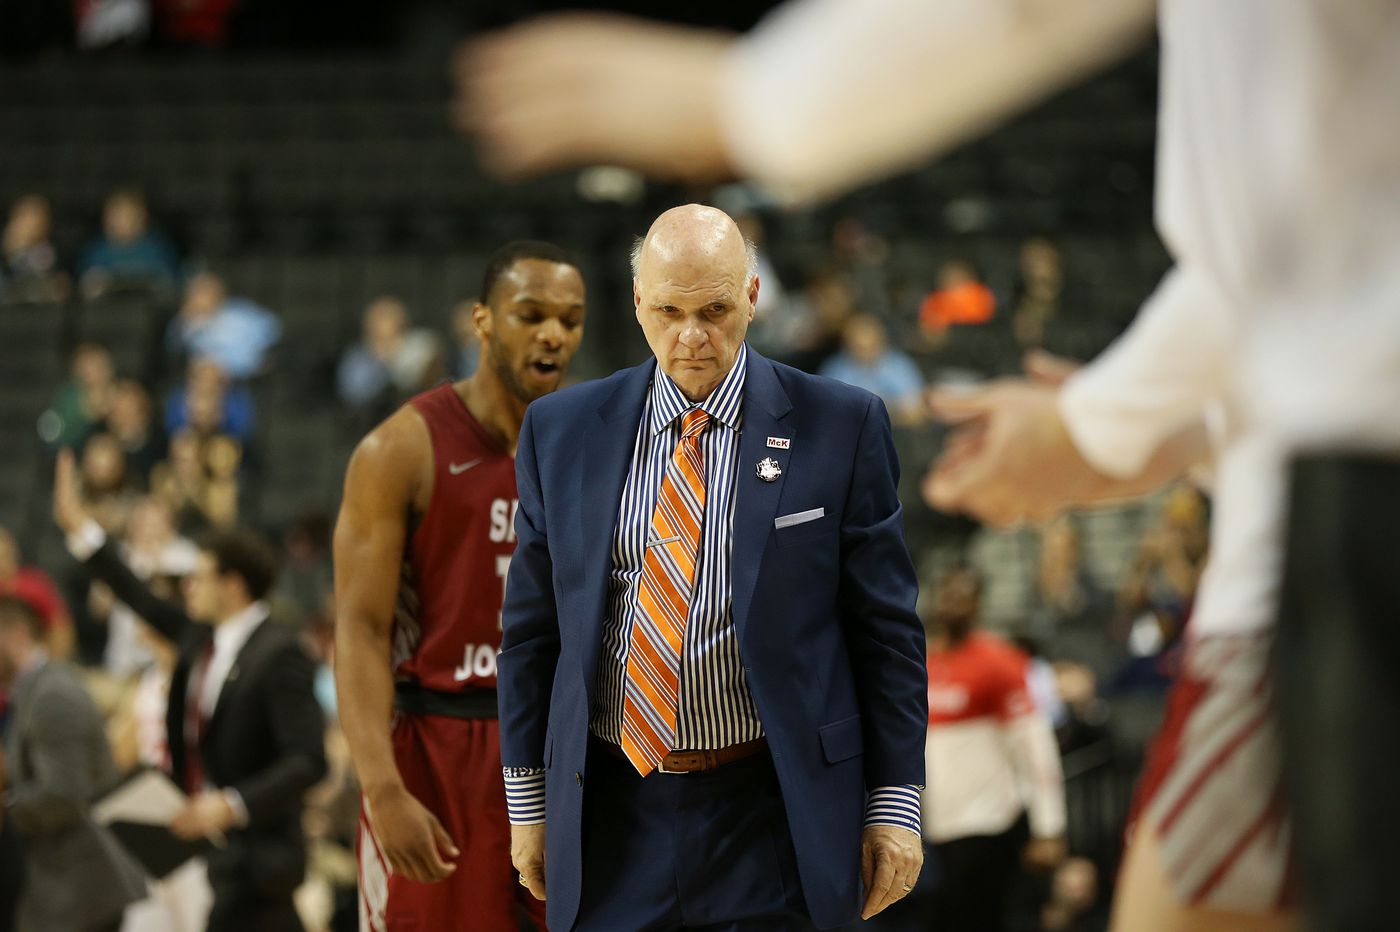 Phil Martelli fired by St. Joseph's after 24 years as head coach